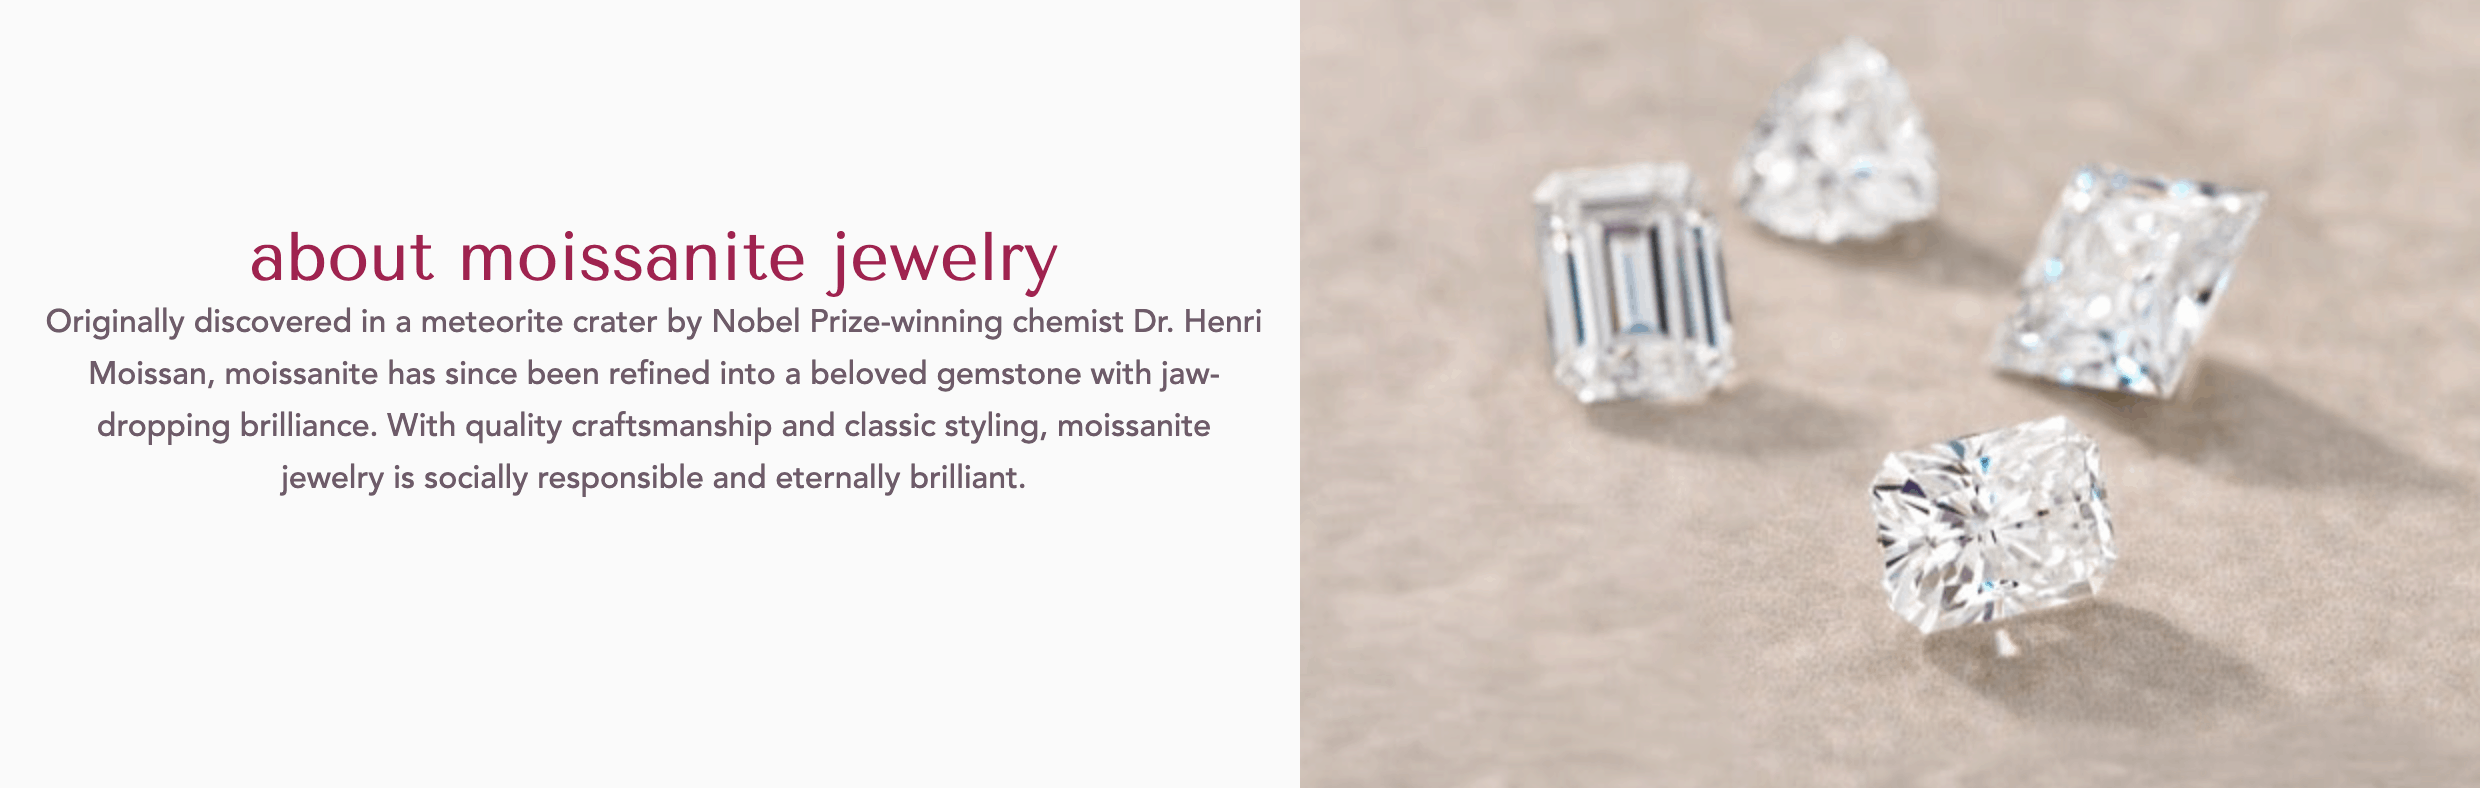 helzberg moissanite jewelry